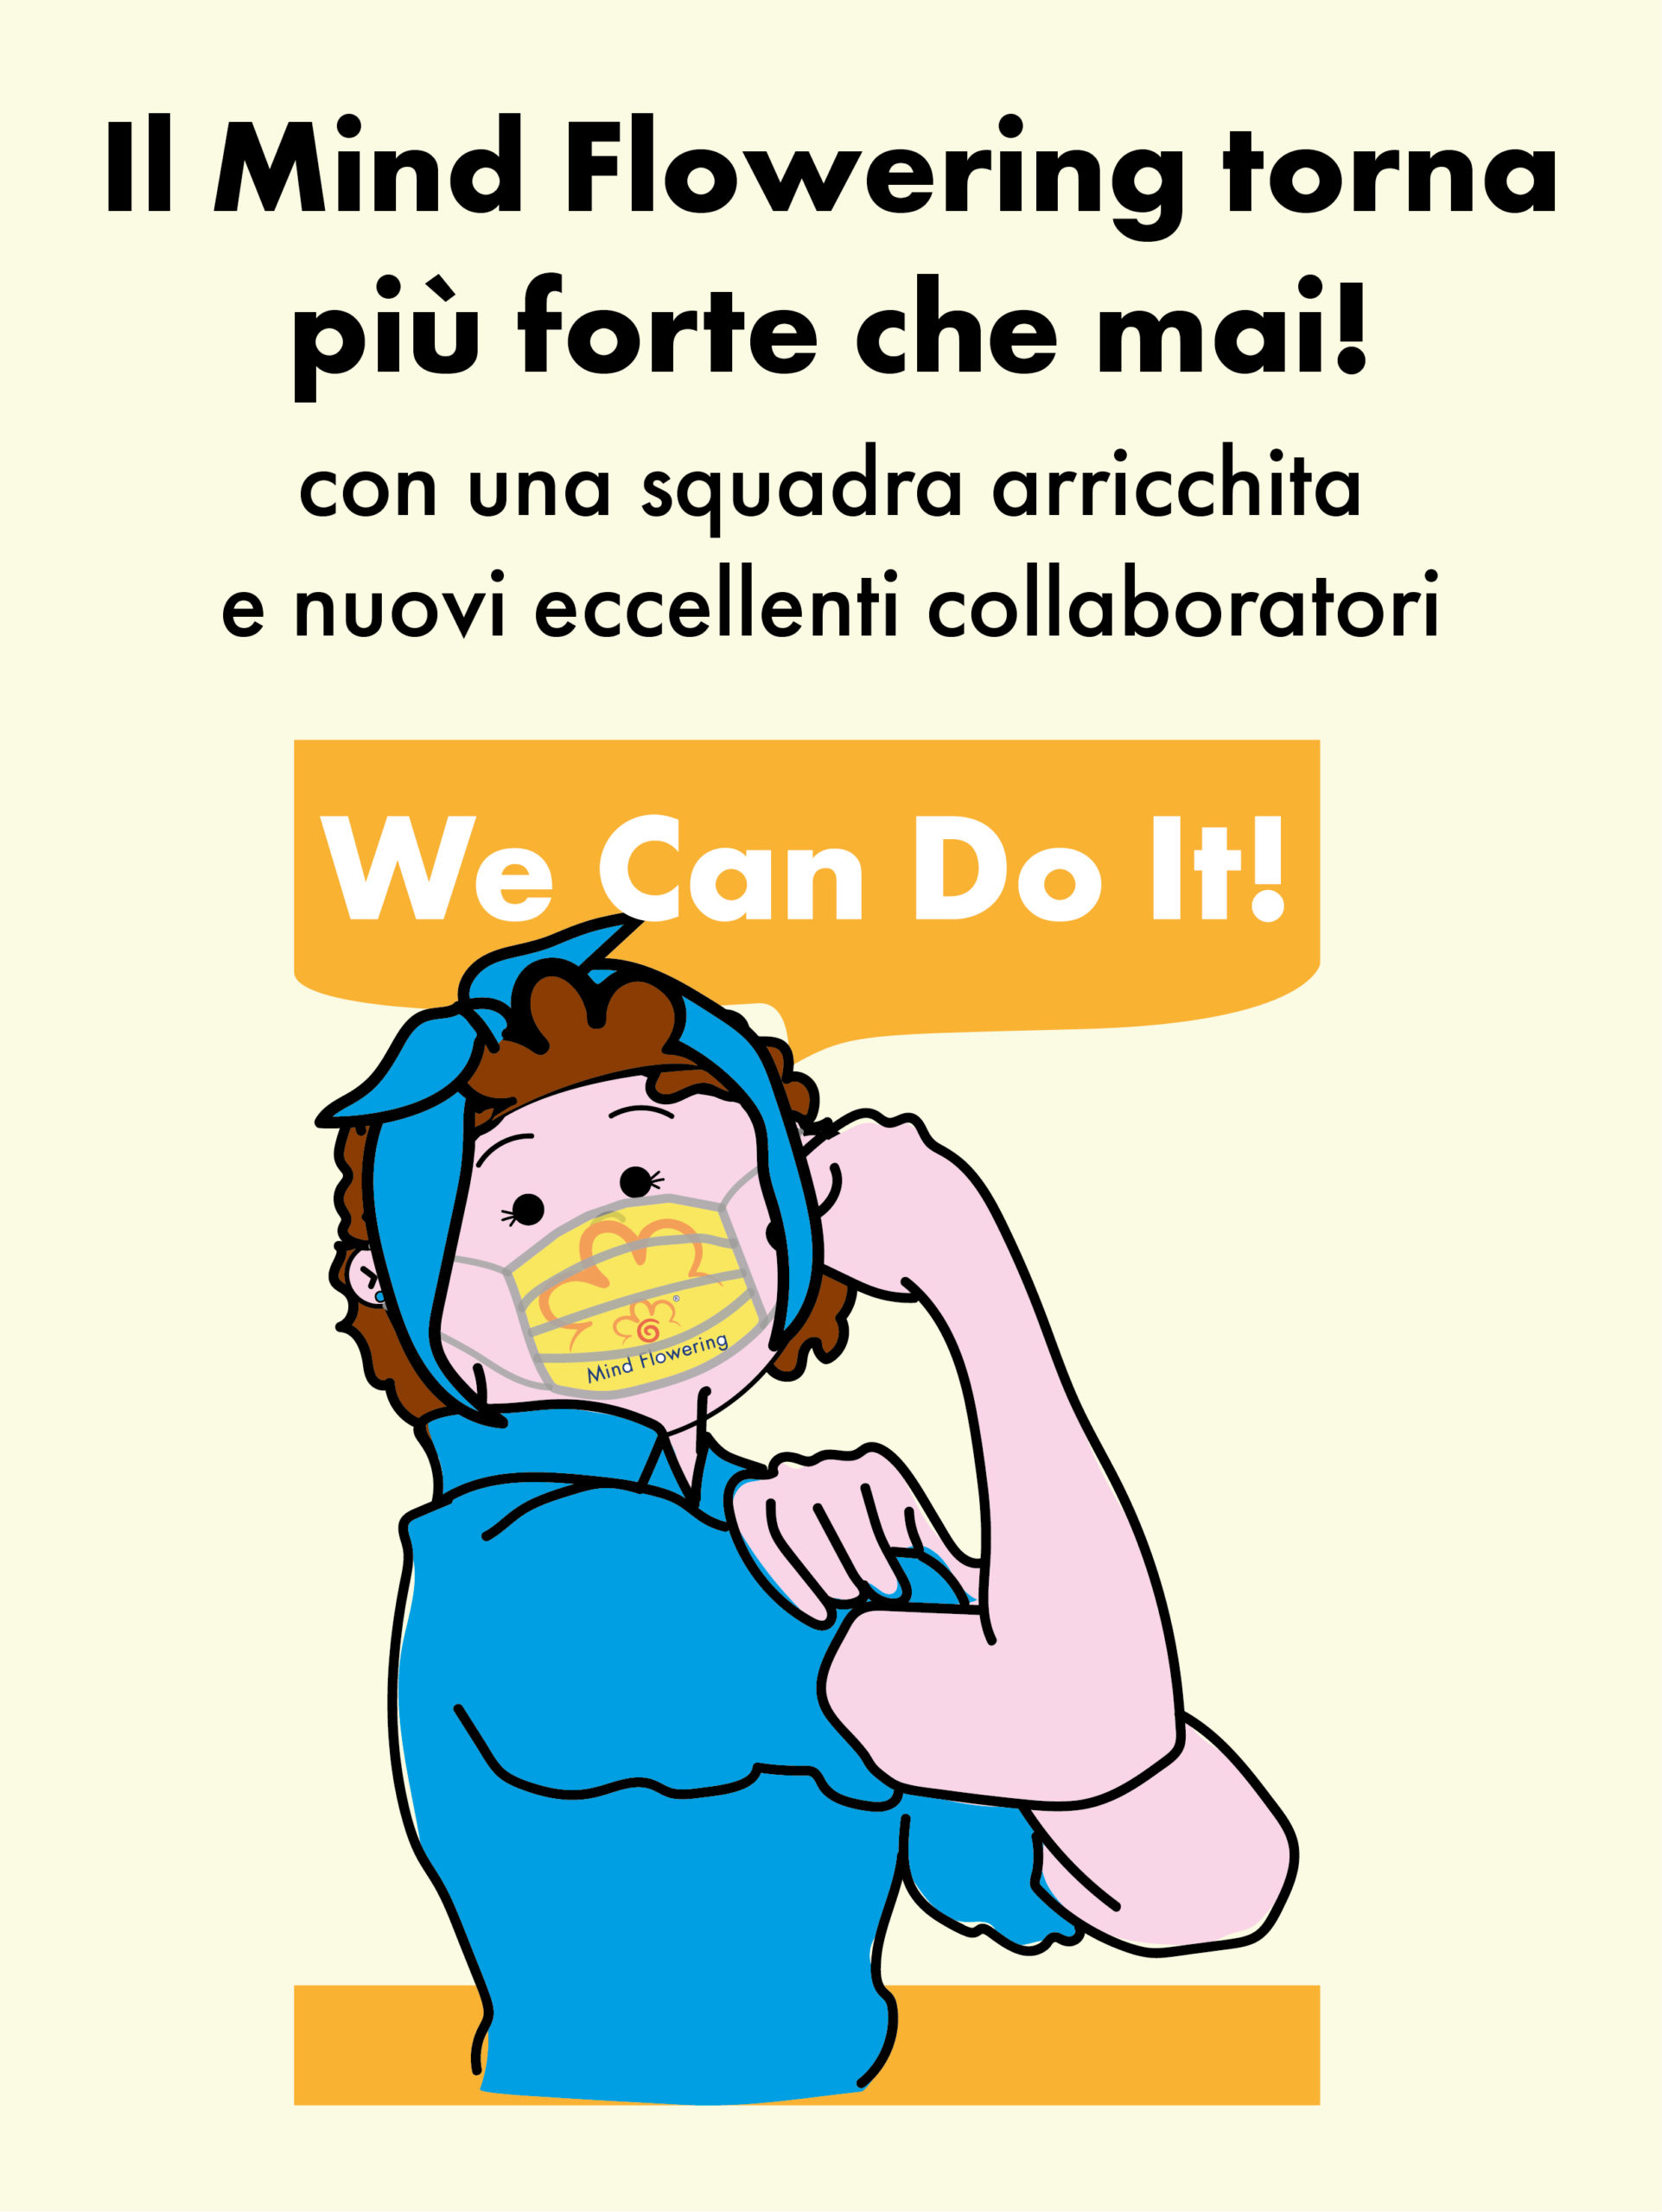 We can do it!2